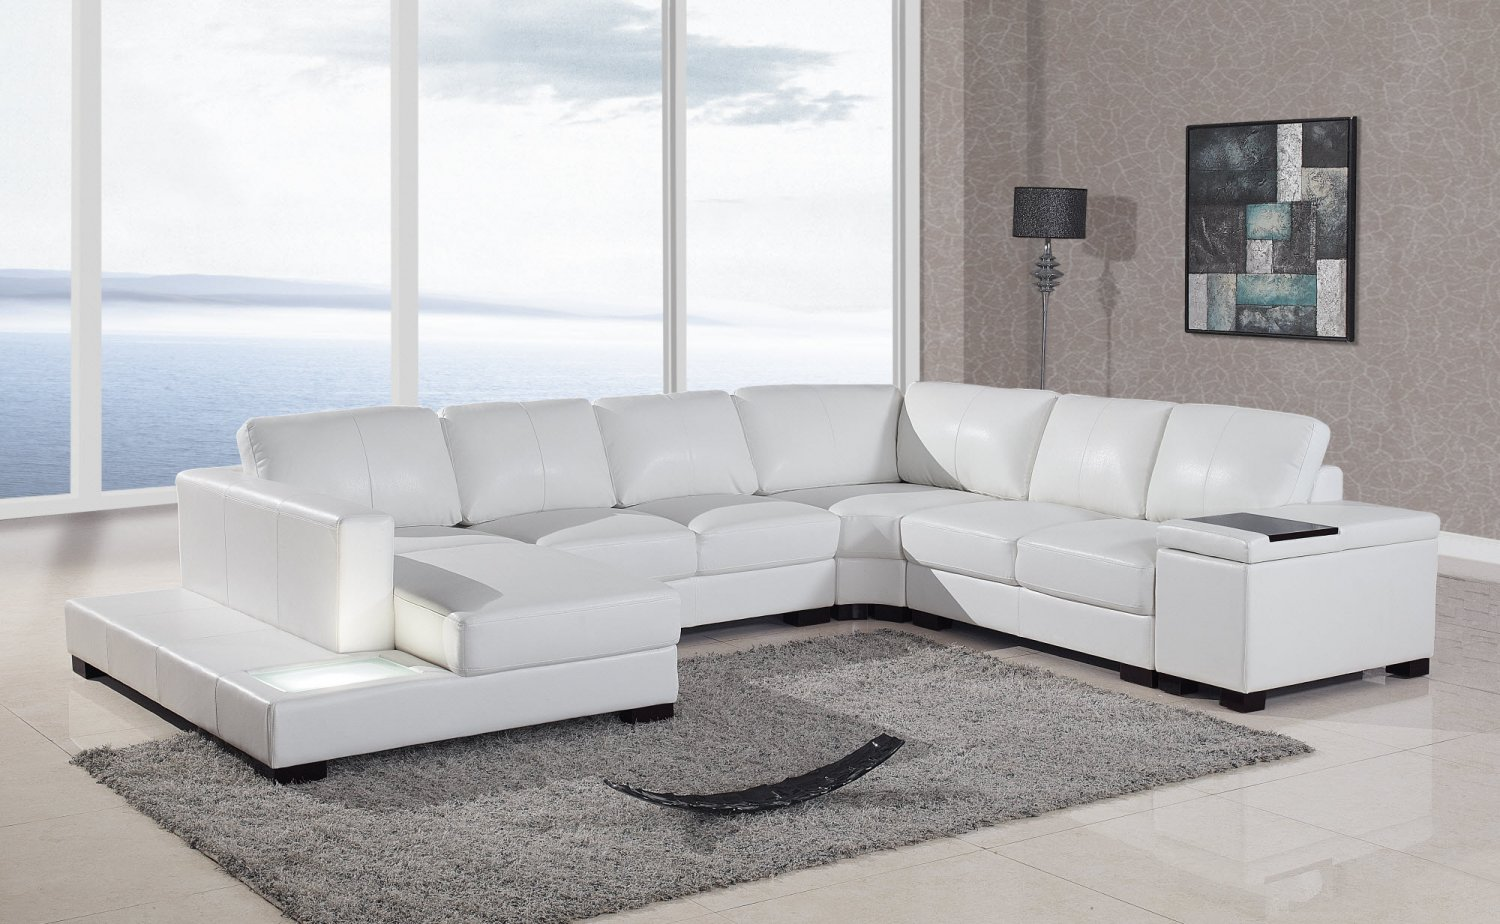 leather modern sectional sofa white 70 bed t35 style italian bonded living room